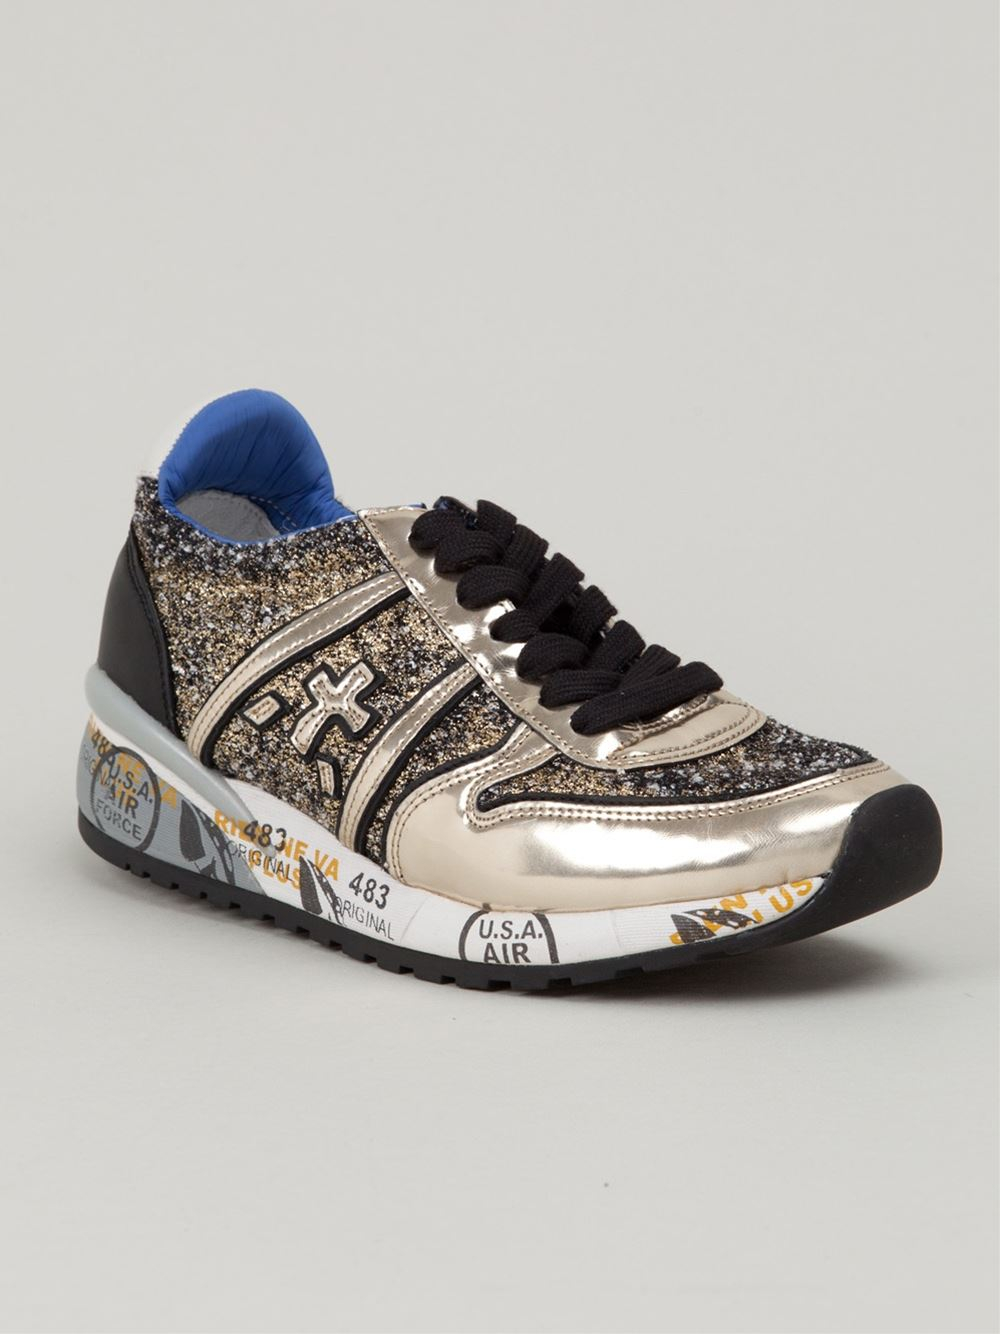 Premiata lace-up sneakers reliable cheap online clearance extremely cheap sale 100% authentic footlocker pictures cheap online XykkkqI